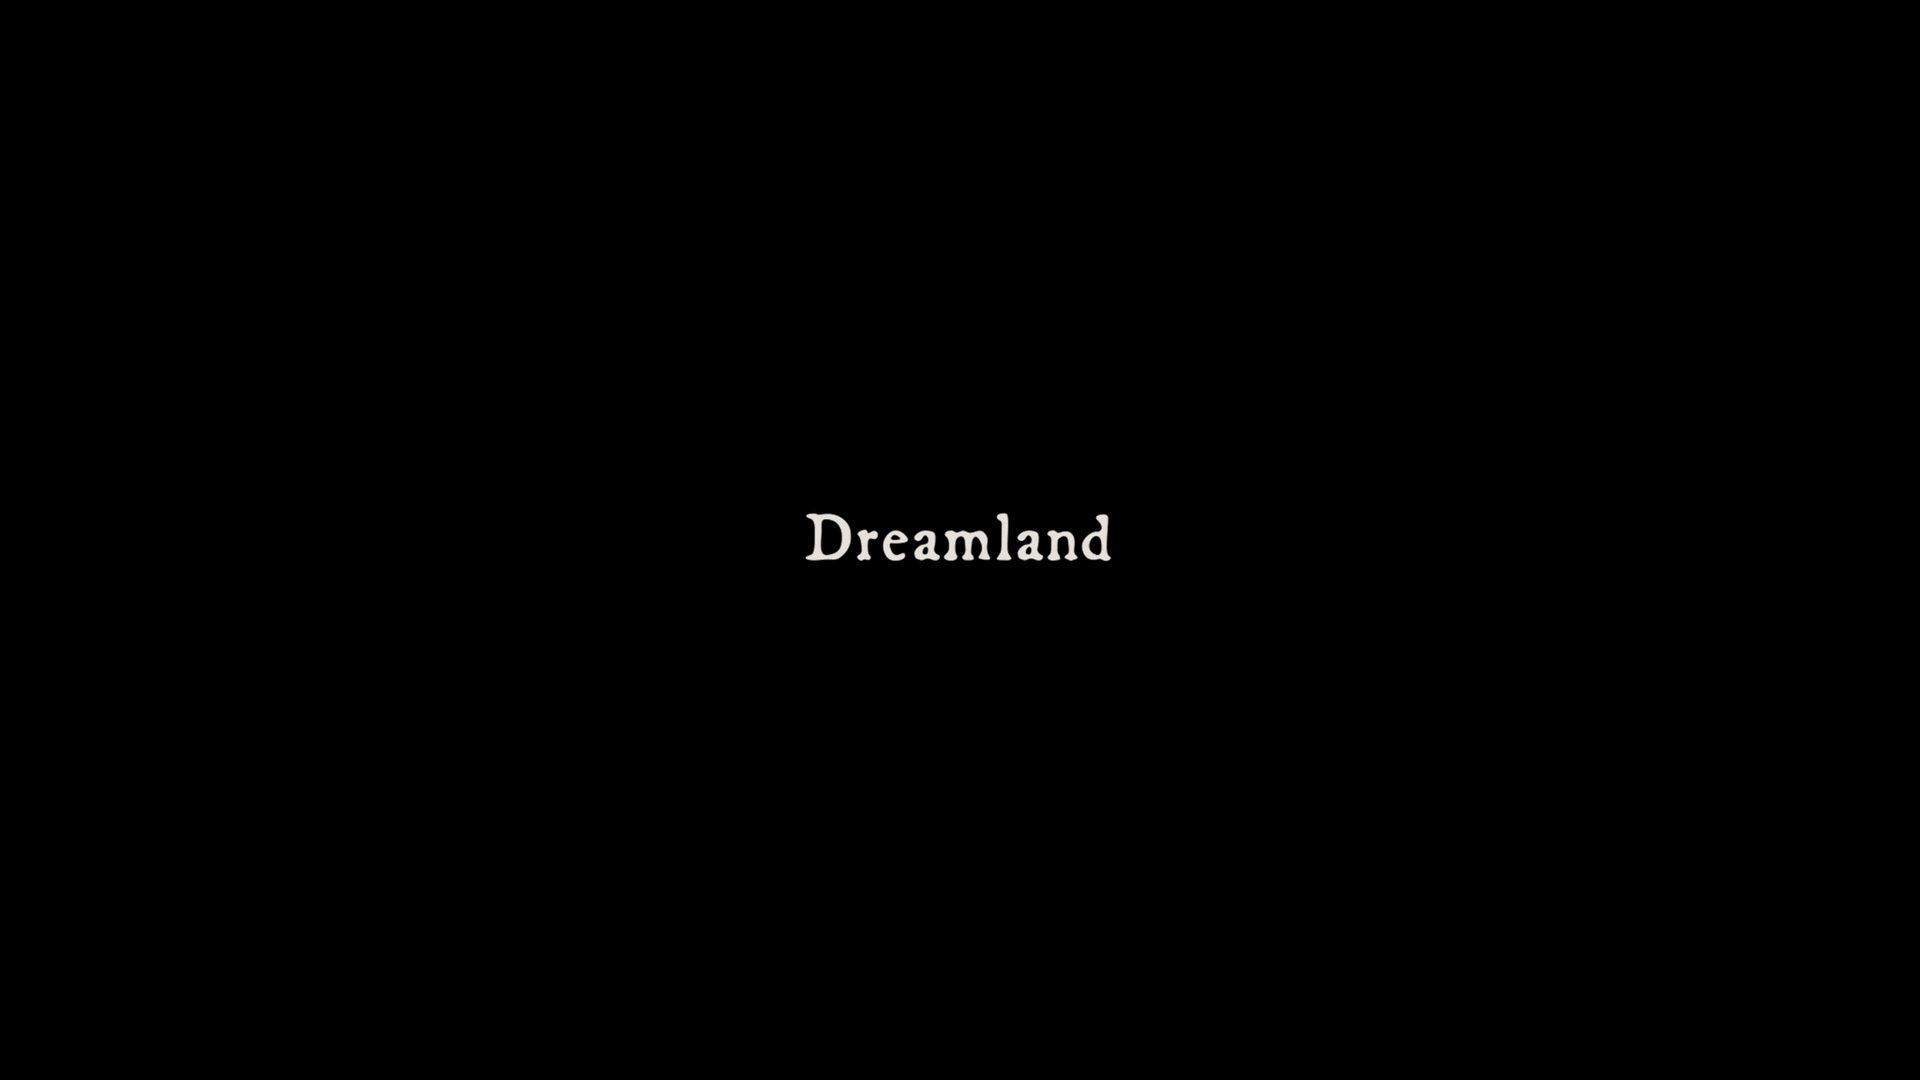 Dreamland (2019) [Merkin Fantasy Film Review] 9